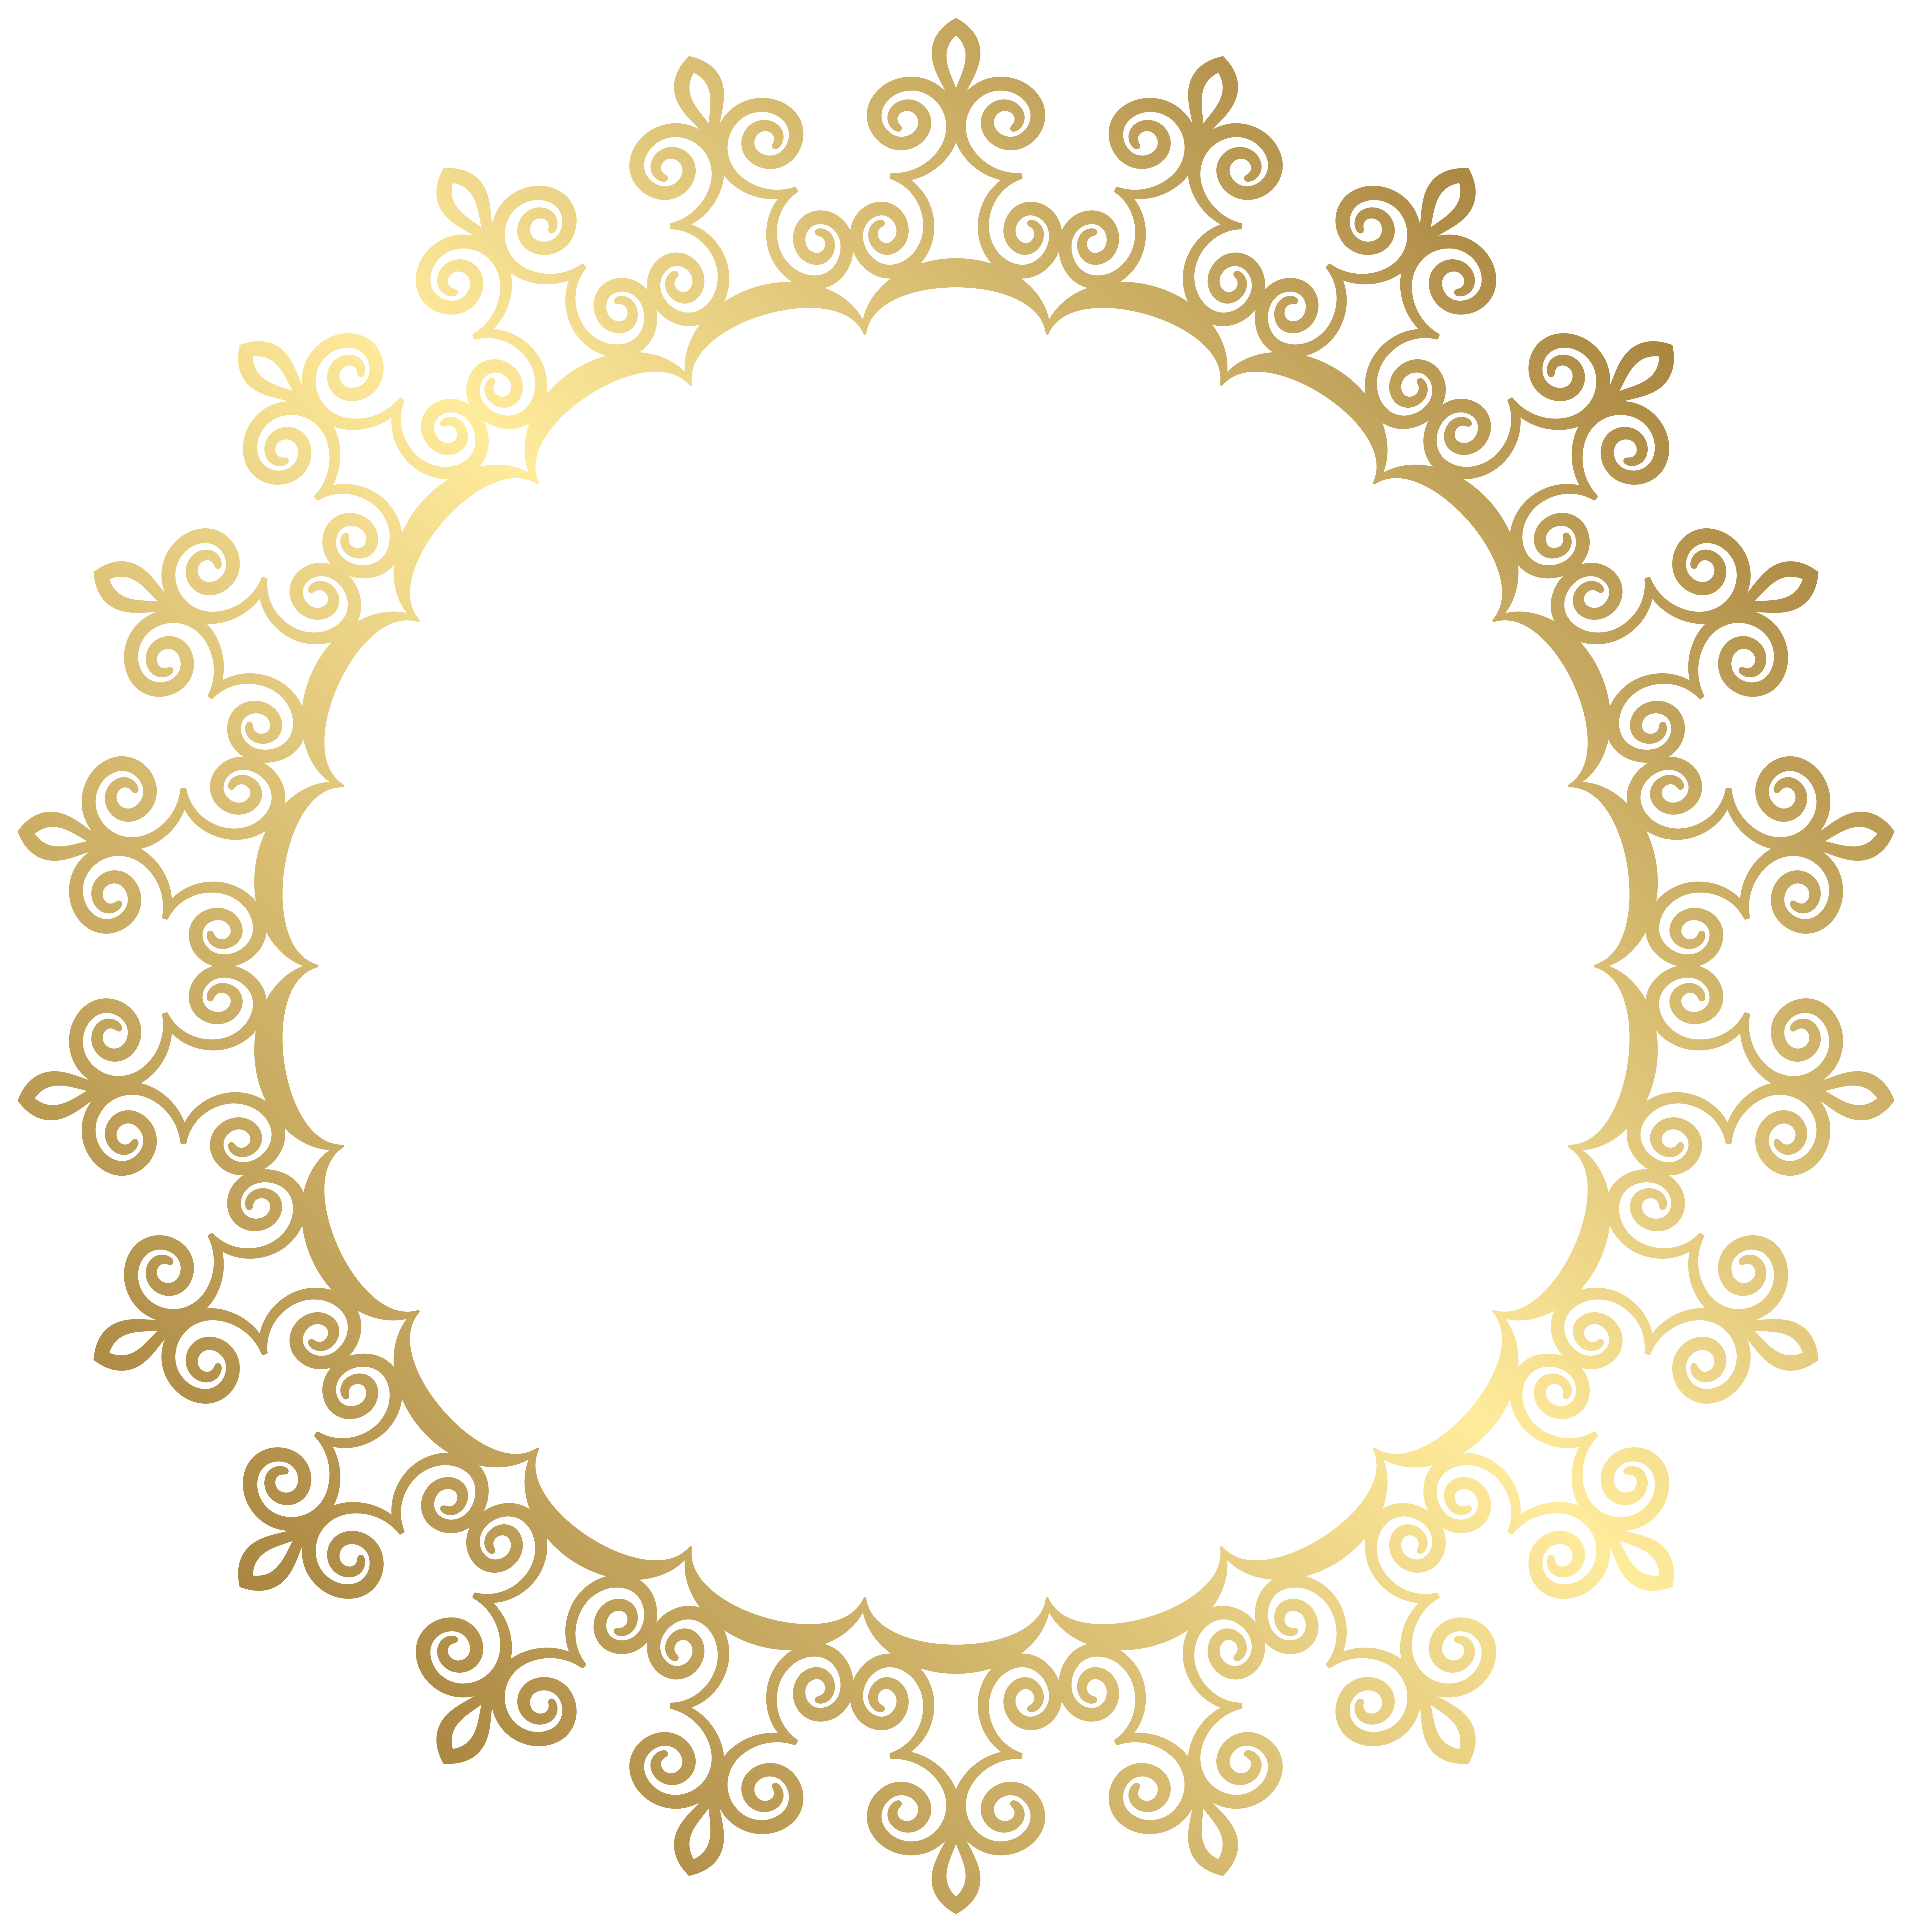 Filigree border png. Round gold frame transparent